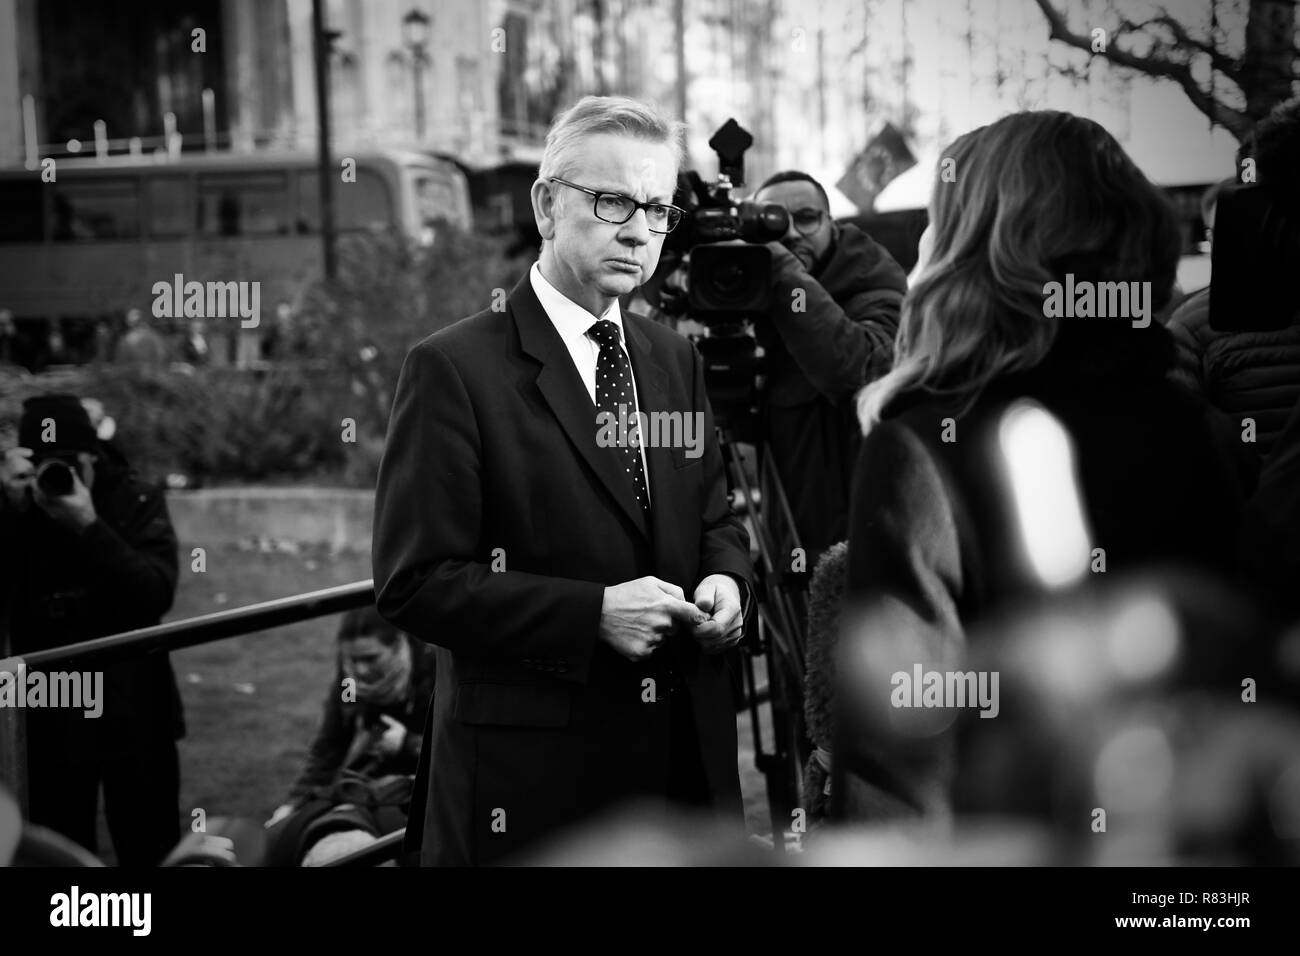 Michael Gove on College Green Westminster - Stock Image